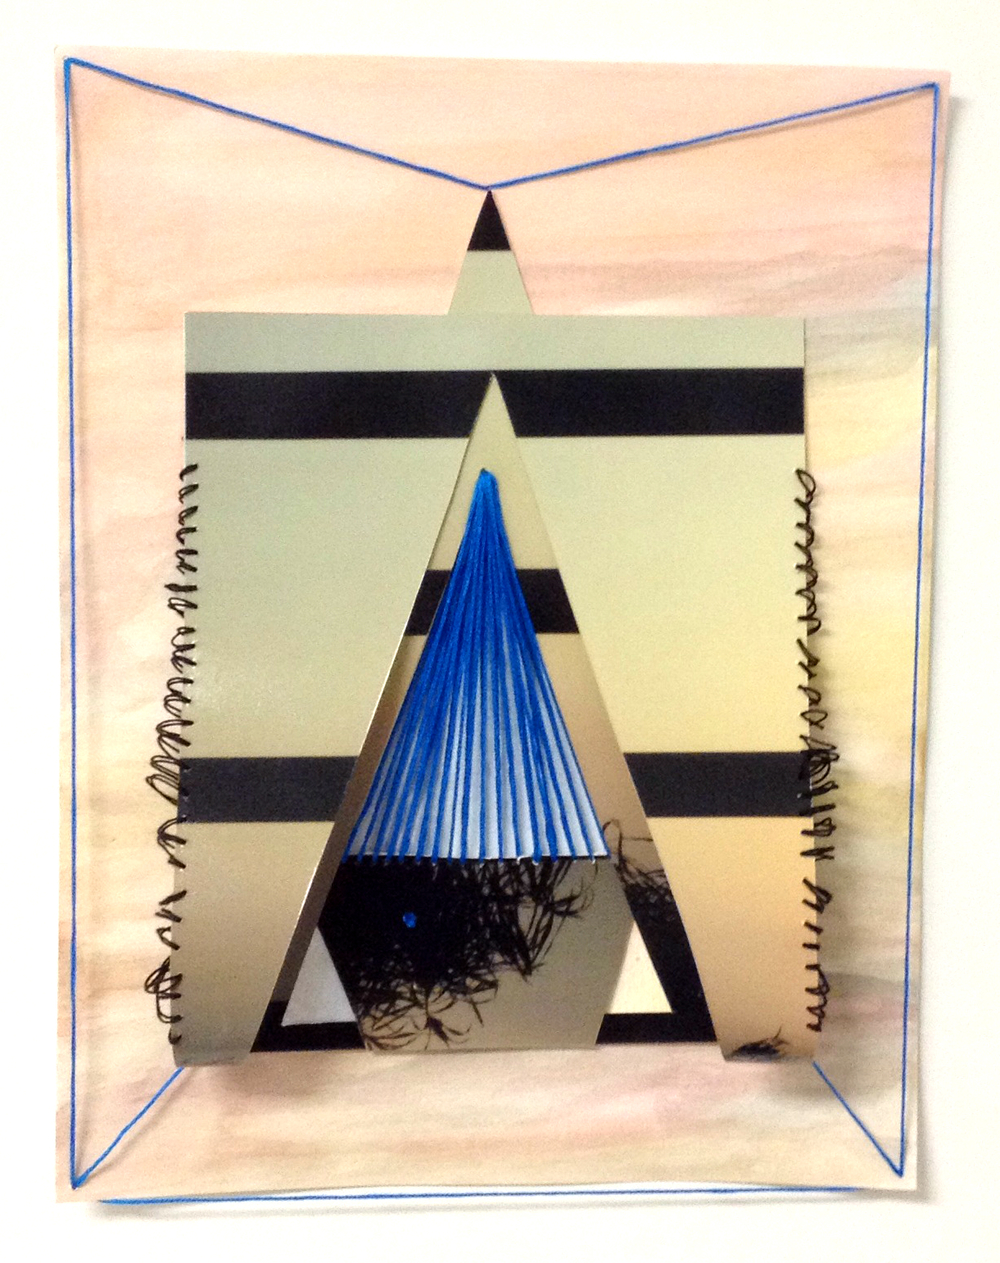 paper 18 (under which reality?), 2014  gouache, photograph, thread on paper  11 x 8.5 inches